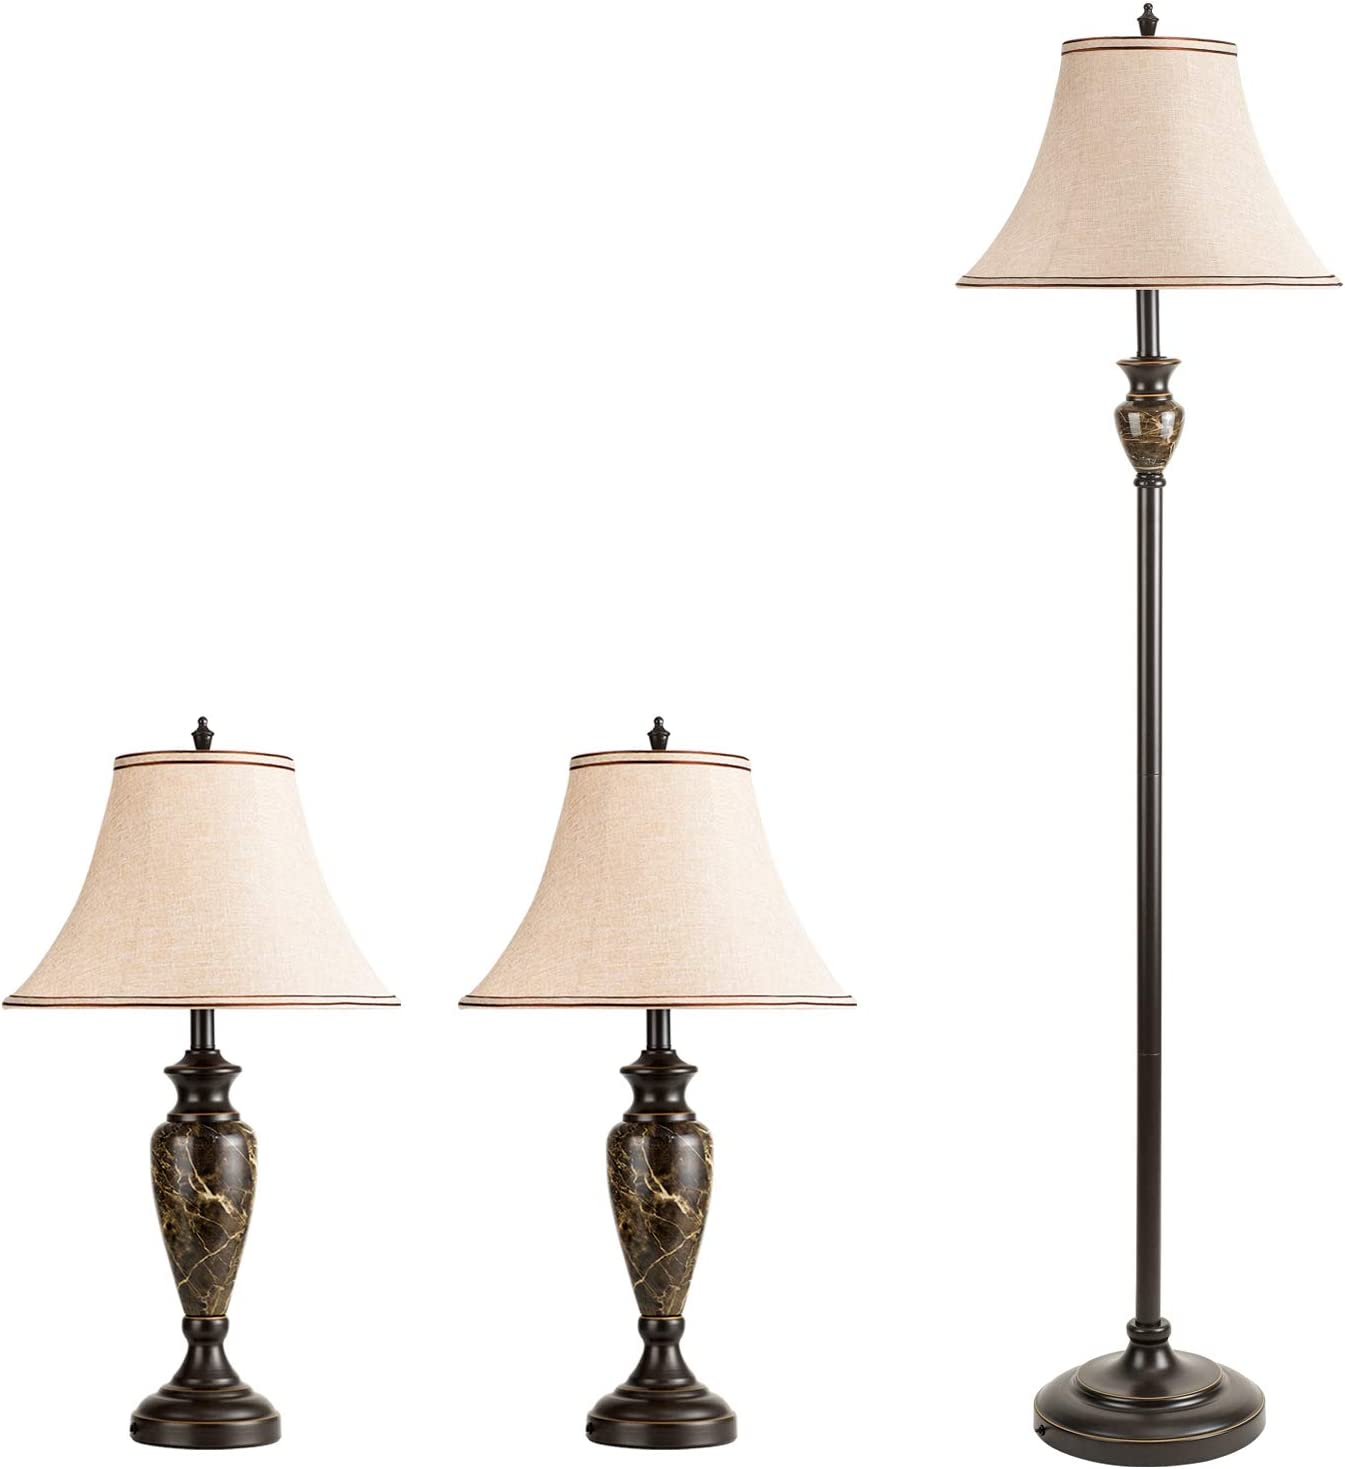 Shine Decor 3 Pack Lamp Set of 2 Table Lamps 1 Floor Lamp, ETL-Listed Lamp Set of 3 Vintage 3-Piece Lamps Pack with Fabric Brown Bell Lamp Base Resin Marble Décor, Bronze LED Lights for Bedroom Living